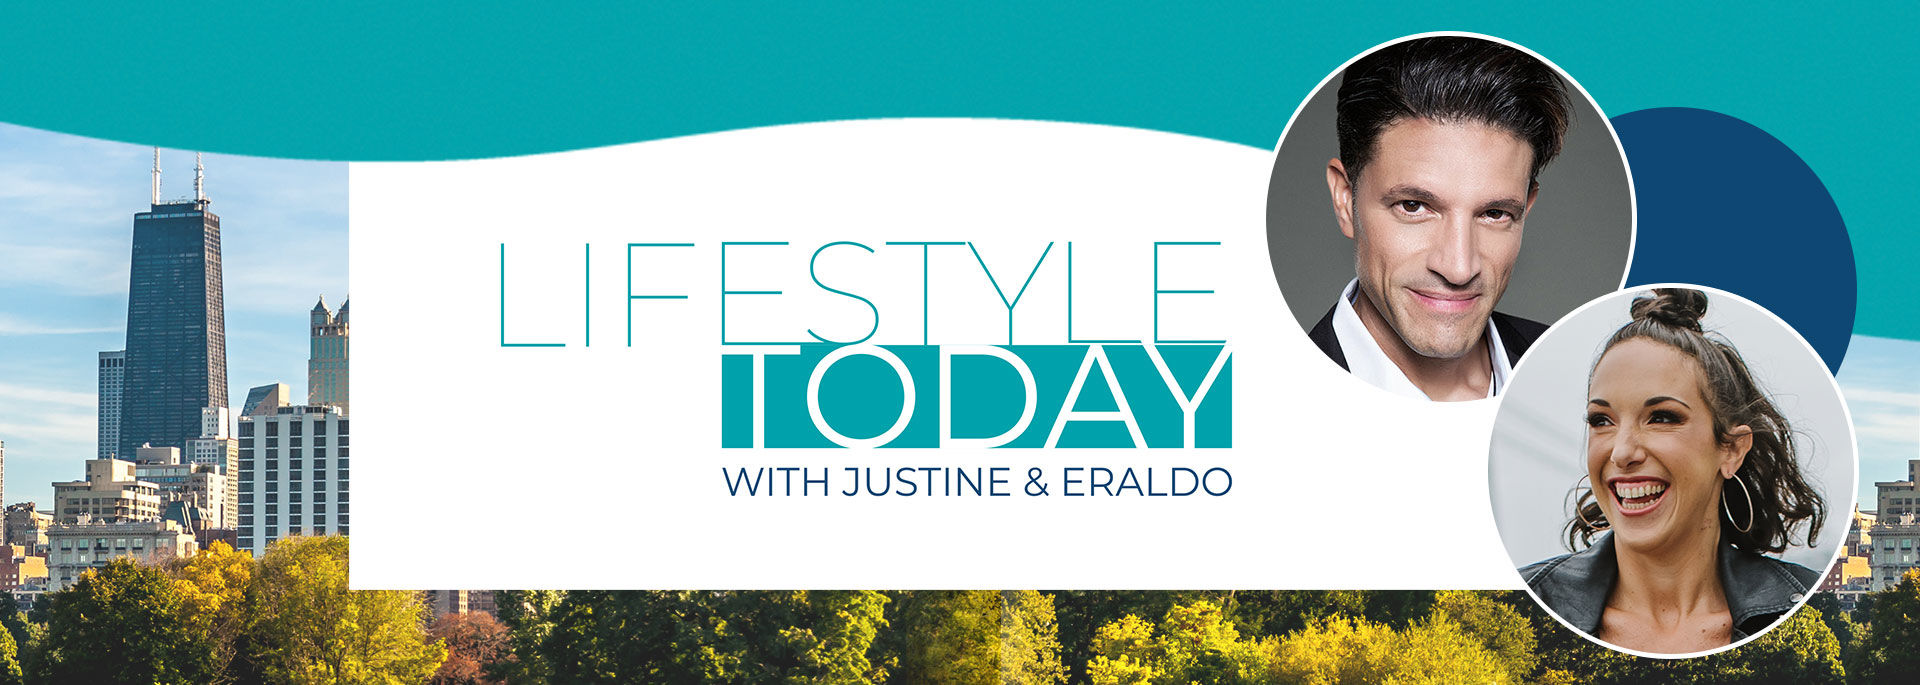 #LIFESTYLE TODAY WITH JUSTINE & ERALDO channel